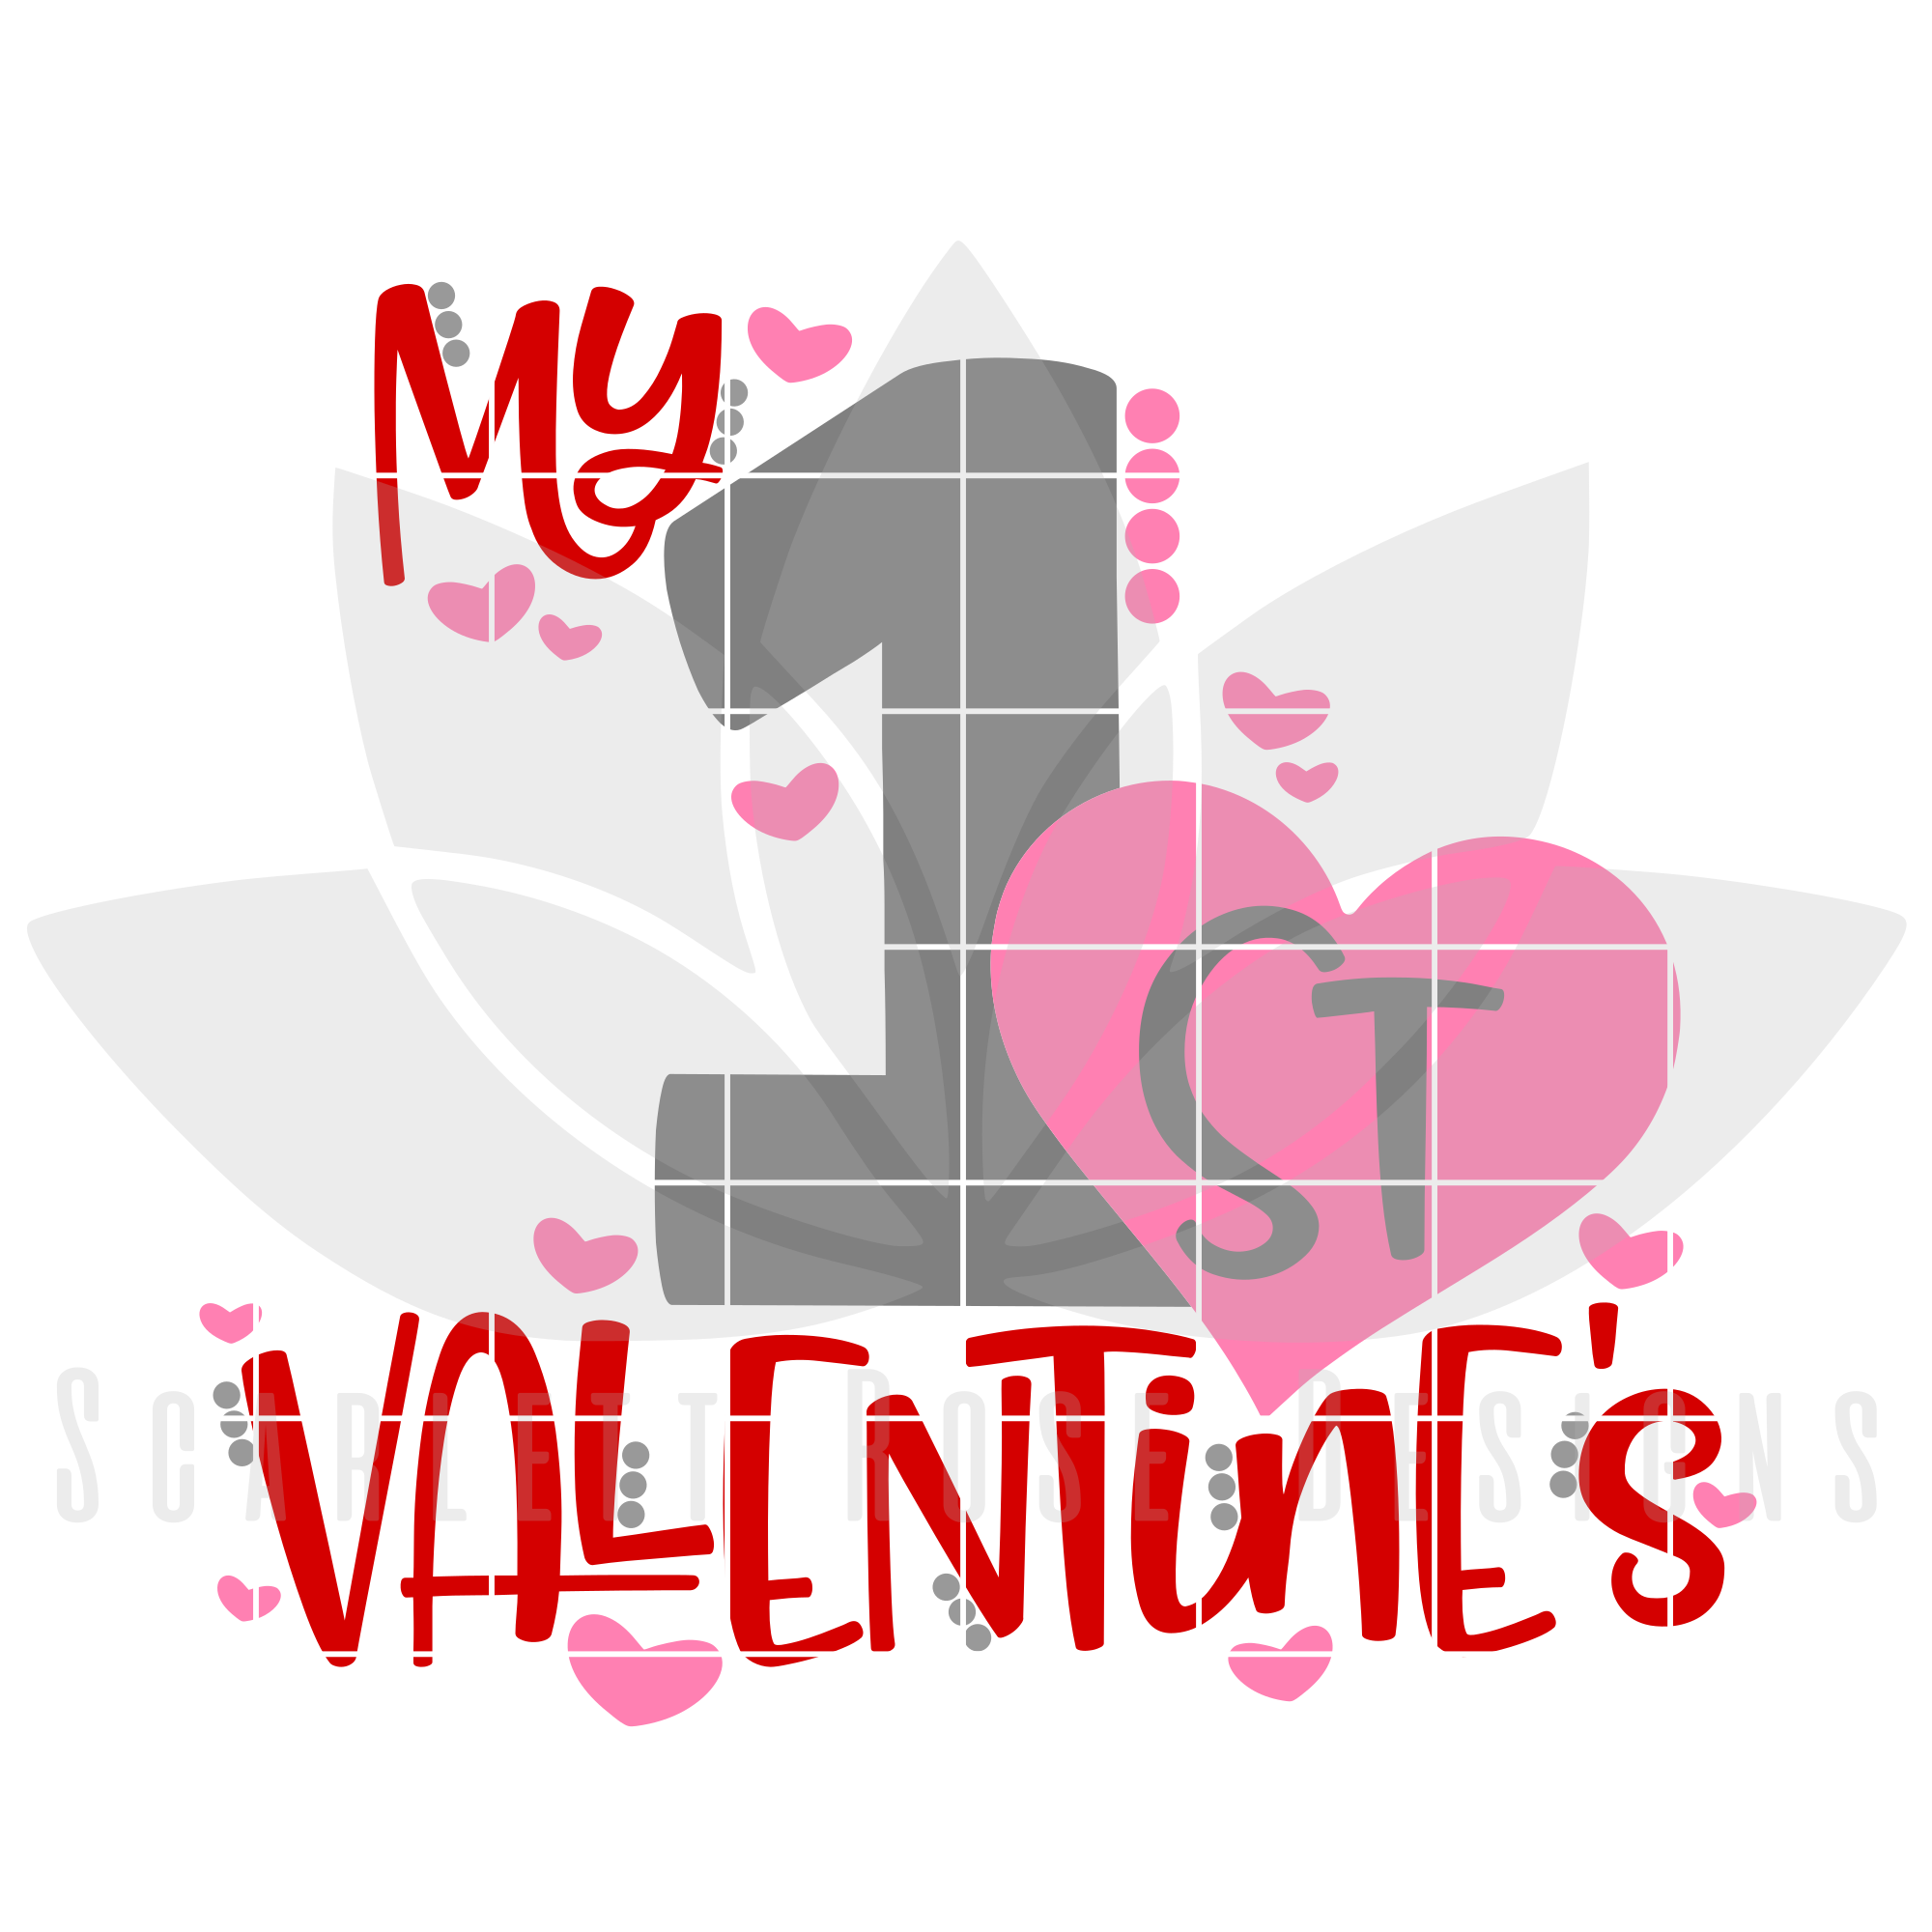 My First Valentine S Day Svg Dxf Cut File Scarlett Rose Designs